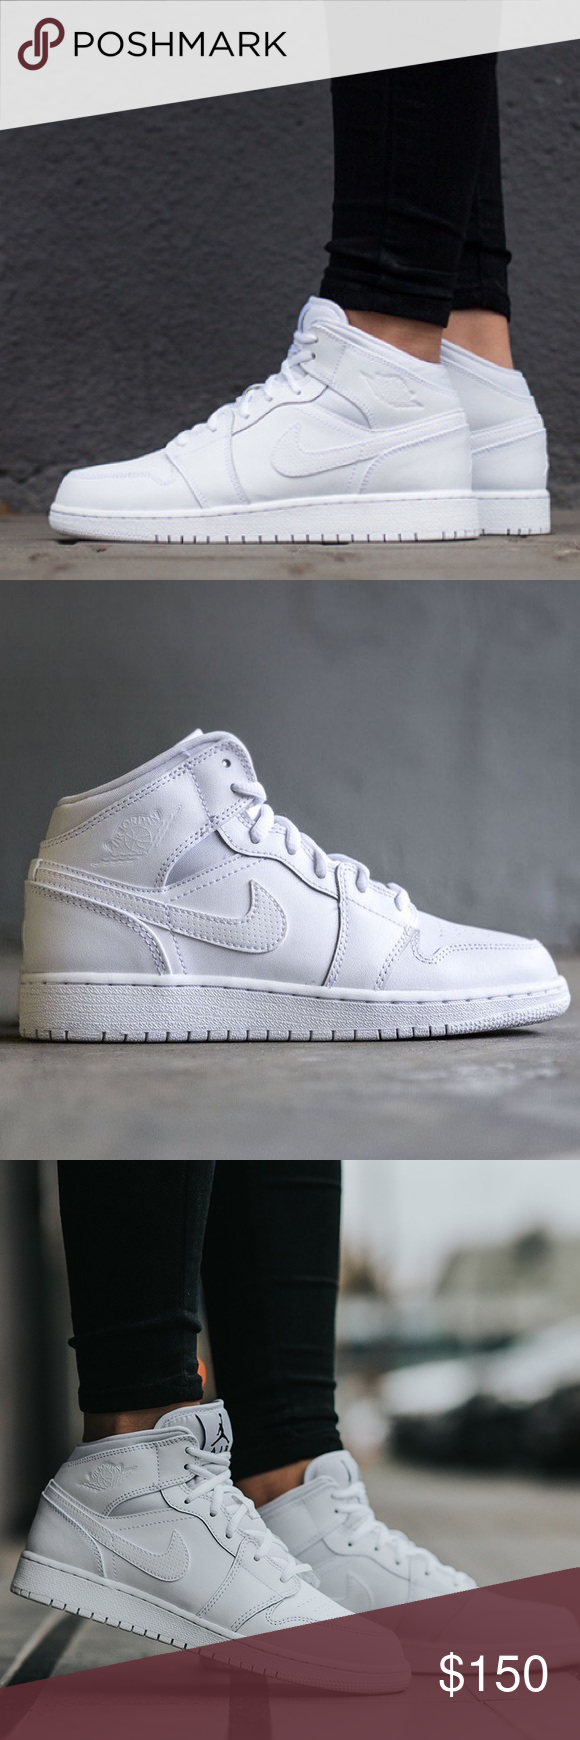 Nike Air Jordan 1 all white women's size 8 shoes Brand new without box. Size